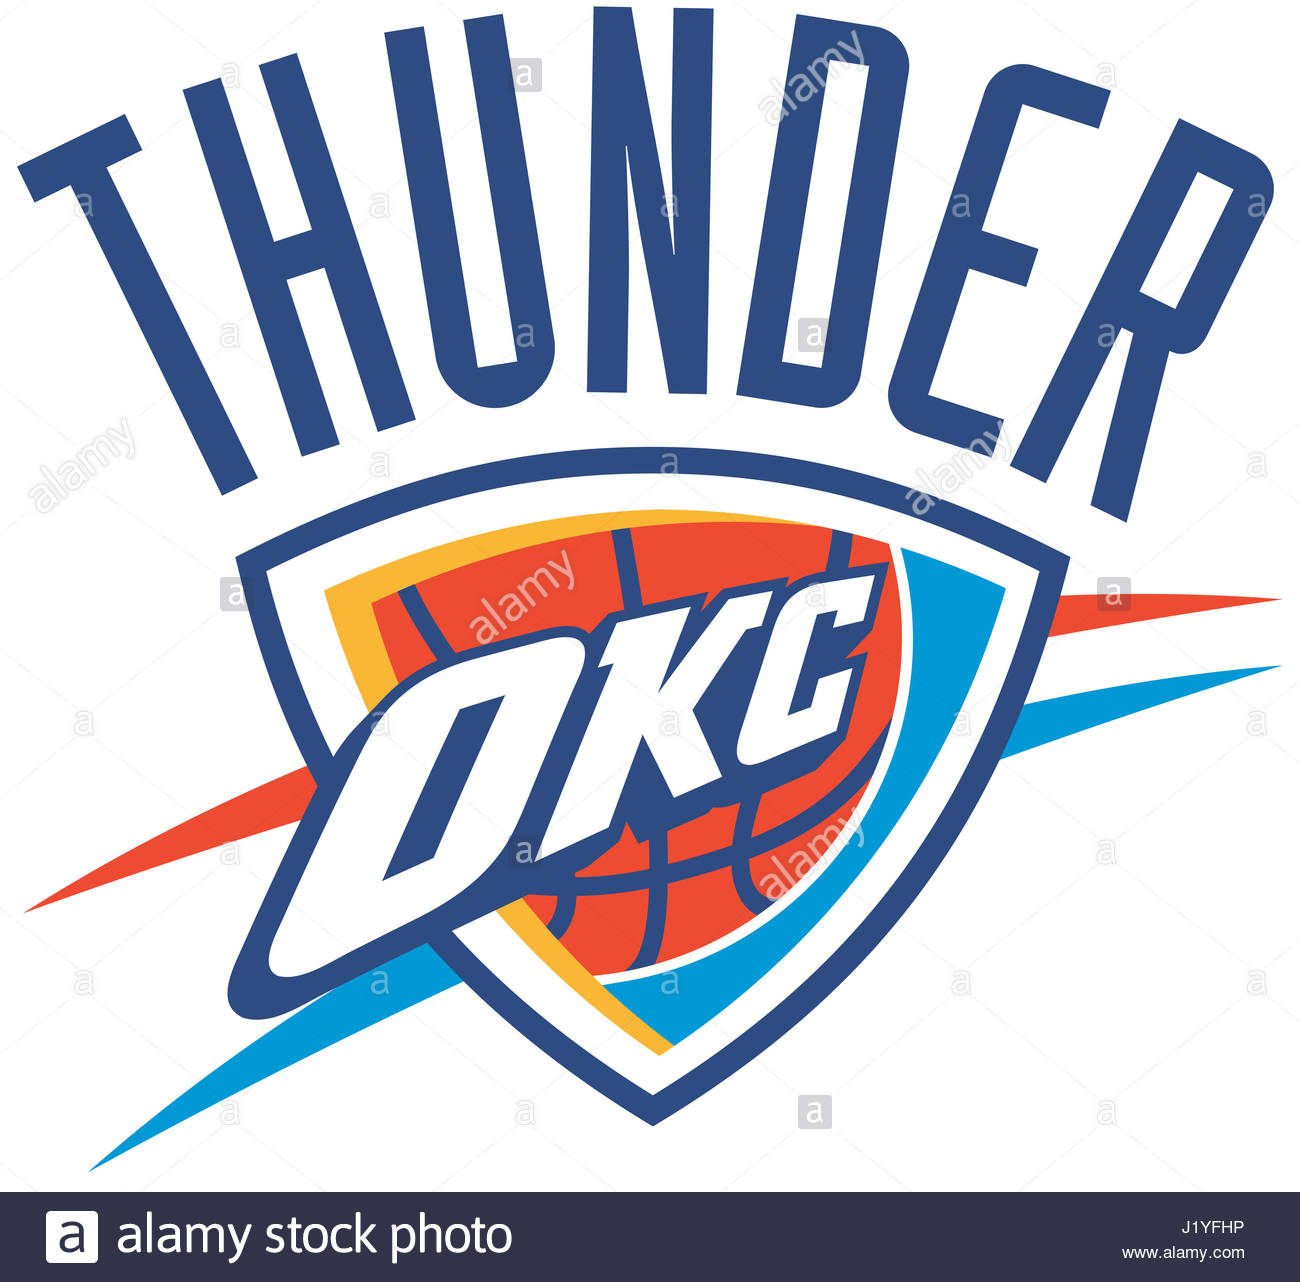 1300x1282 Nba Logo Stock Photos Amp Nba Logo Stock Images